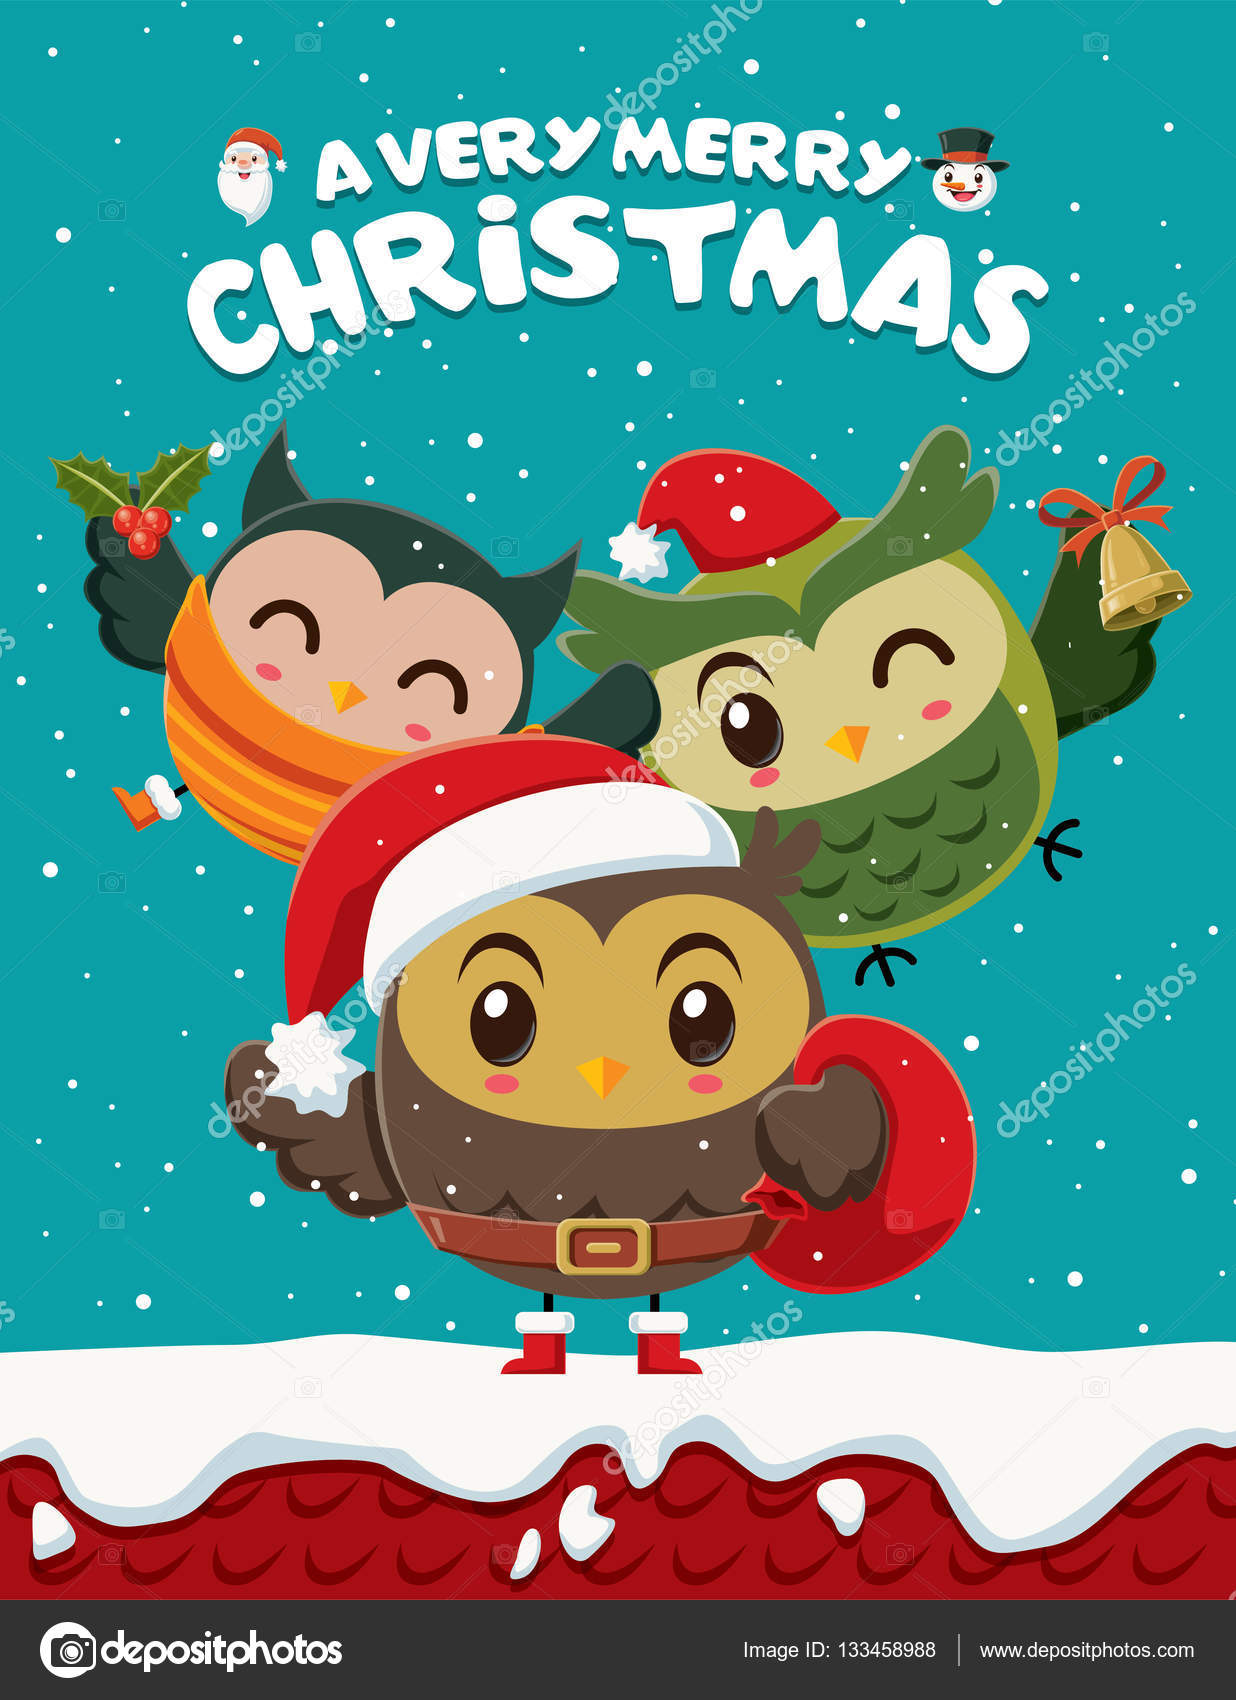 Xmas poster design - Vintage Christmas Poster Design With Owls Characters Stock Vector 133458988